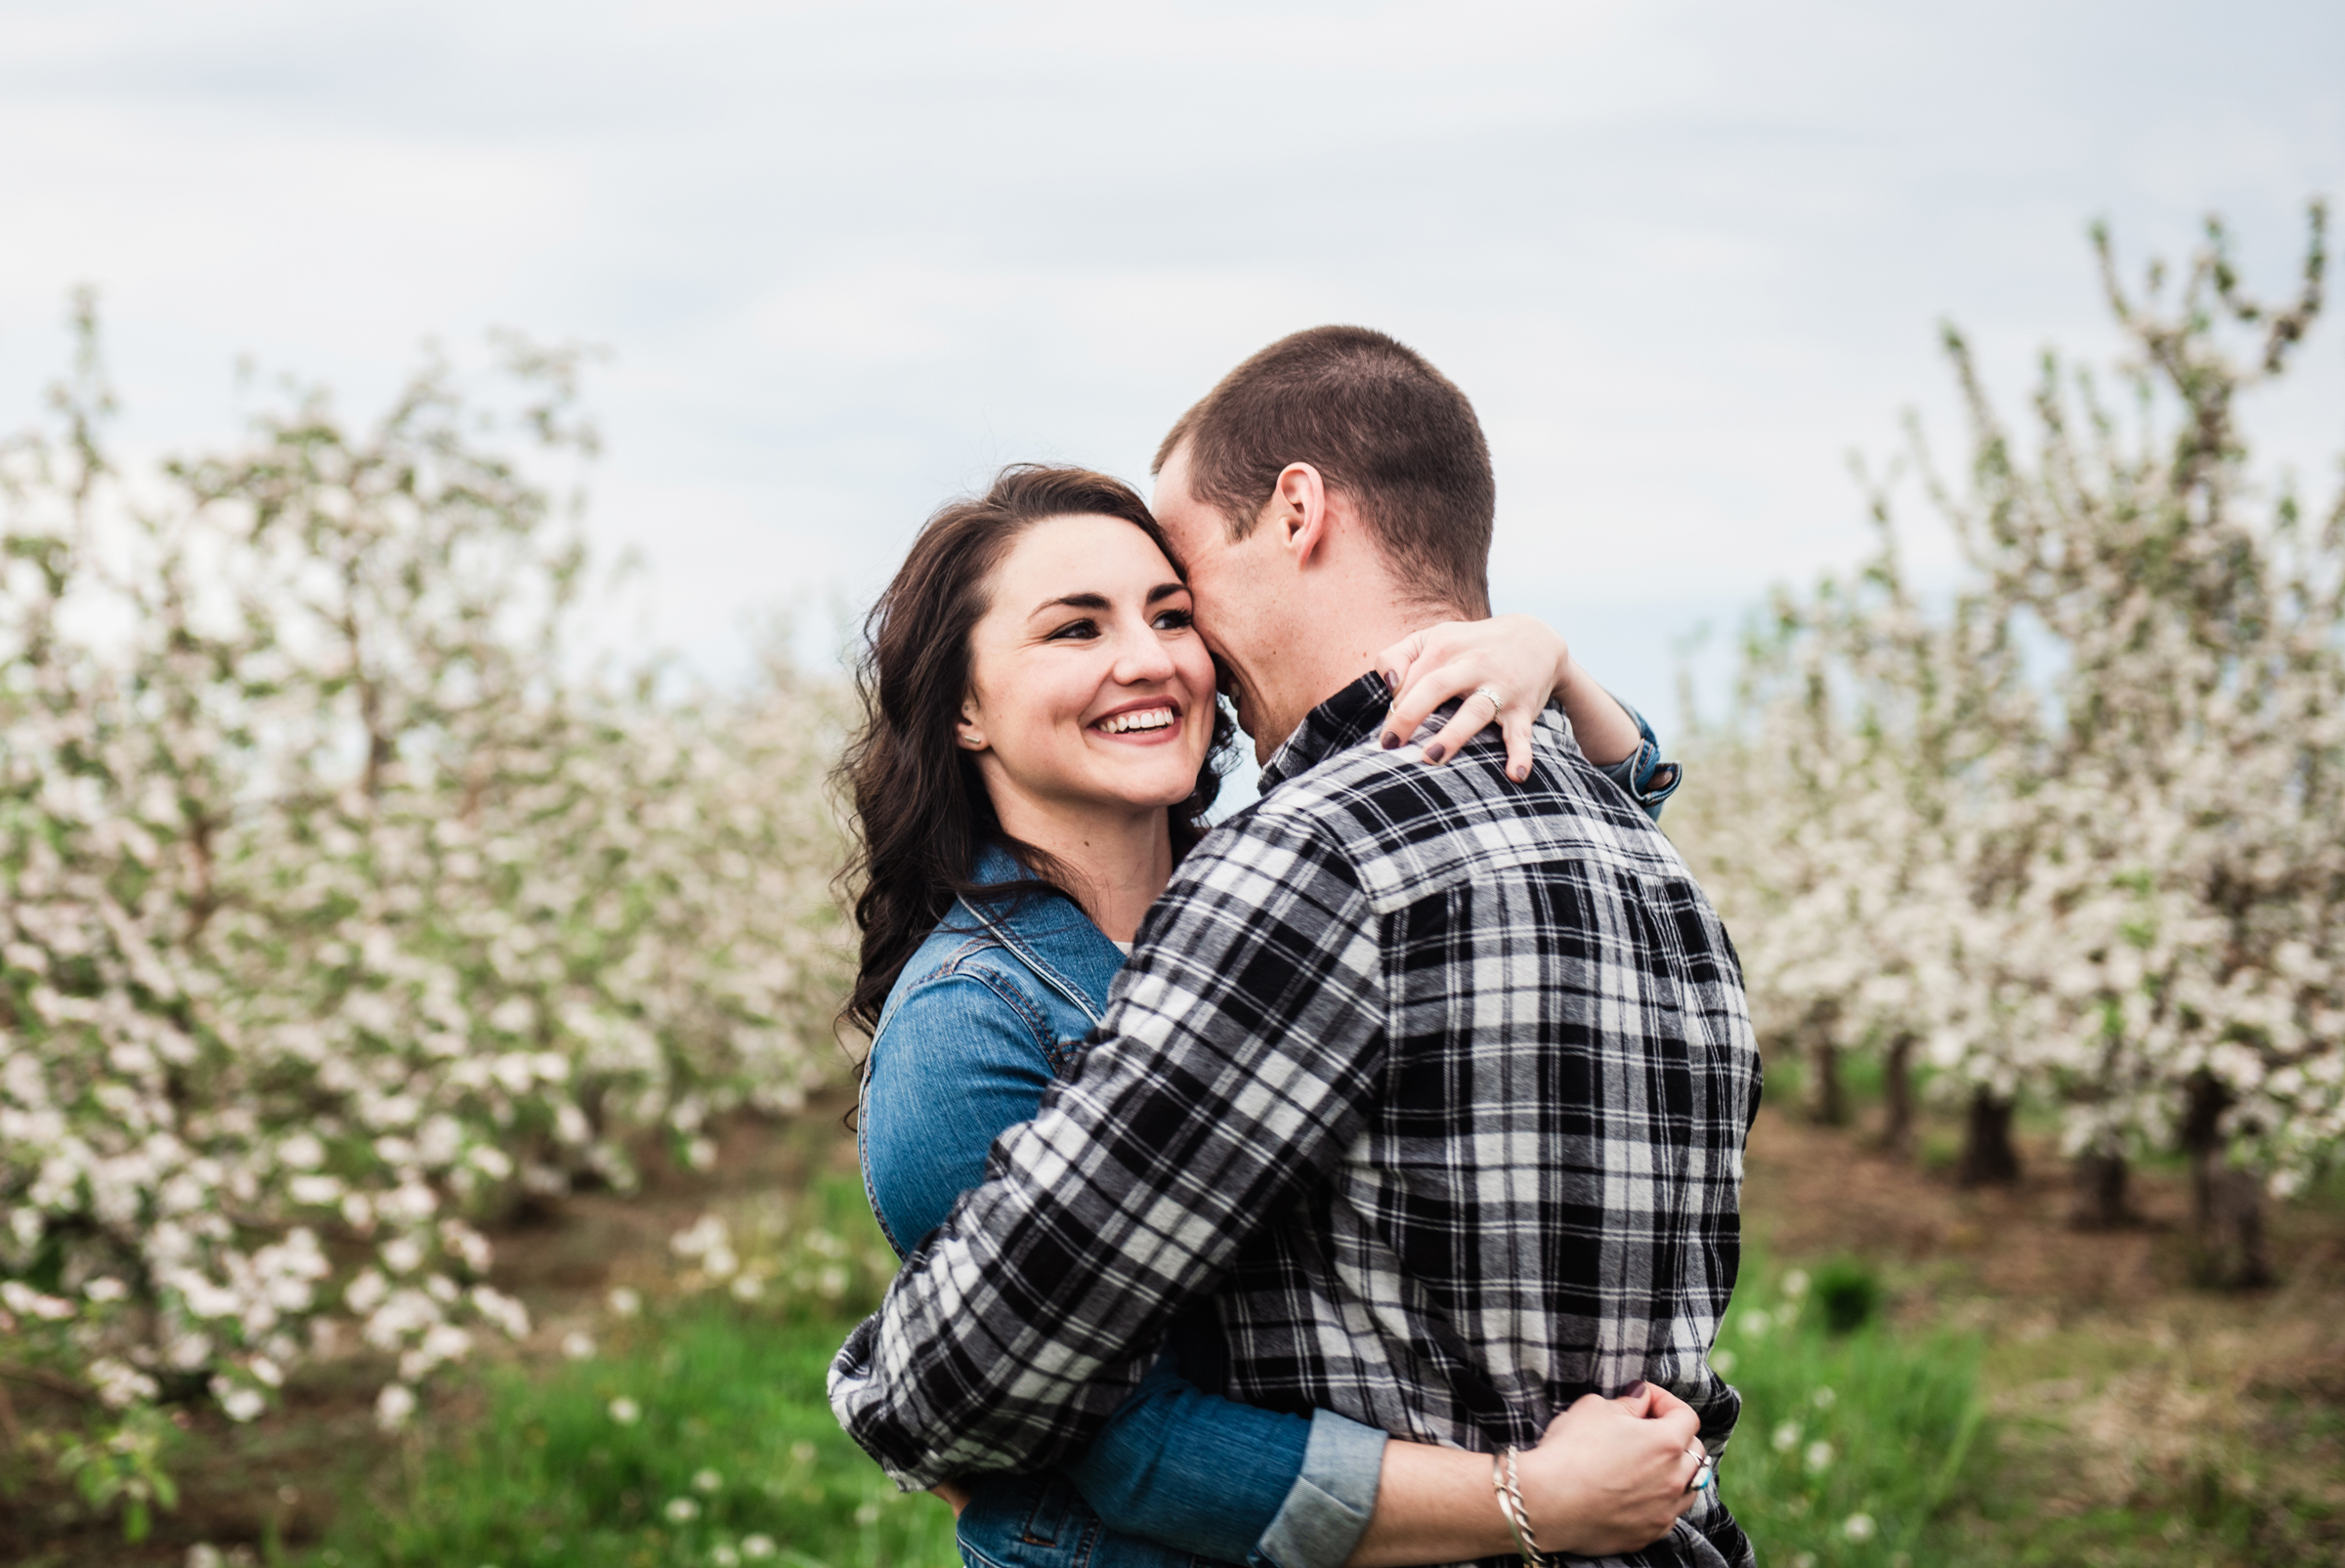 Fox_Farm_Rochester_Couples_Session_JILL_STUDIO_Rochester_NY_Photographer_DSC_7585.jpg